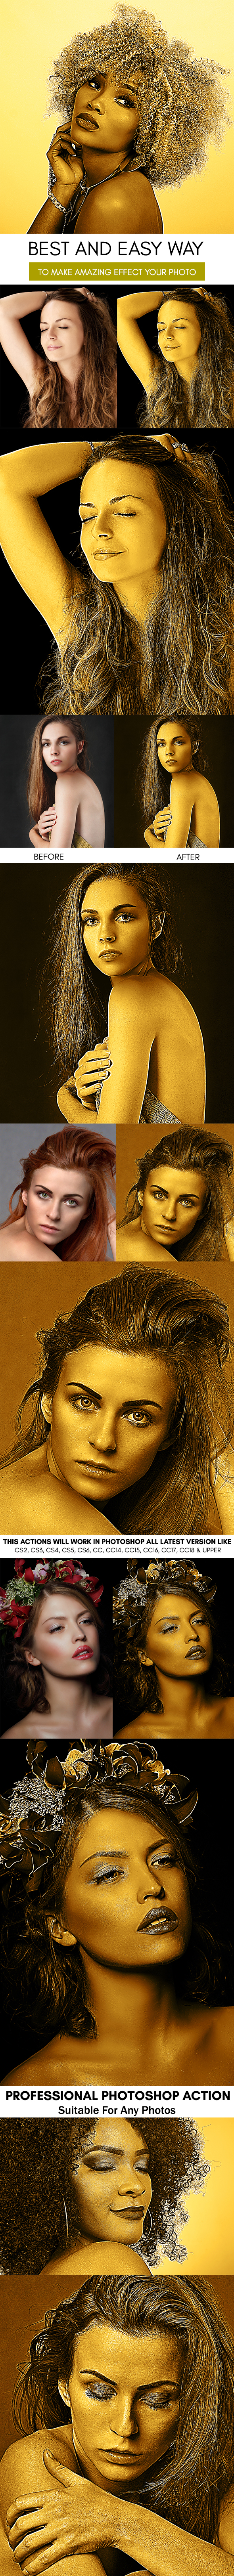 Dry Gold Body Paint :: Photoshop Action - Photoshop Add-ons